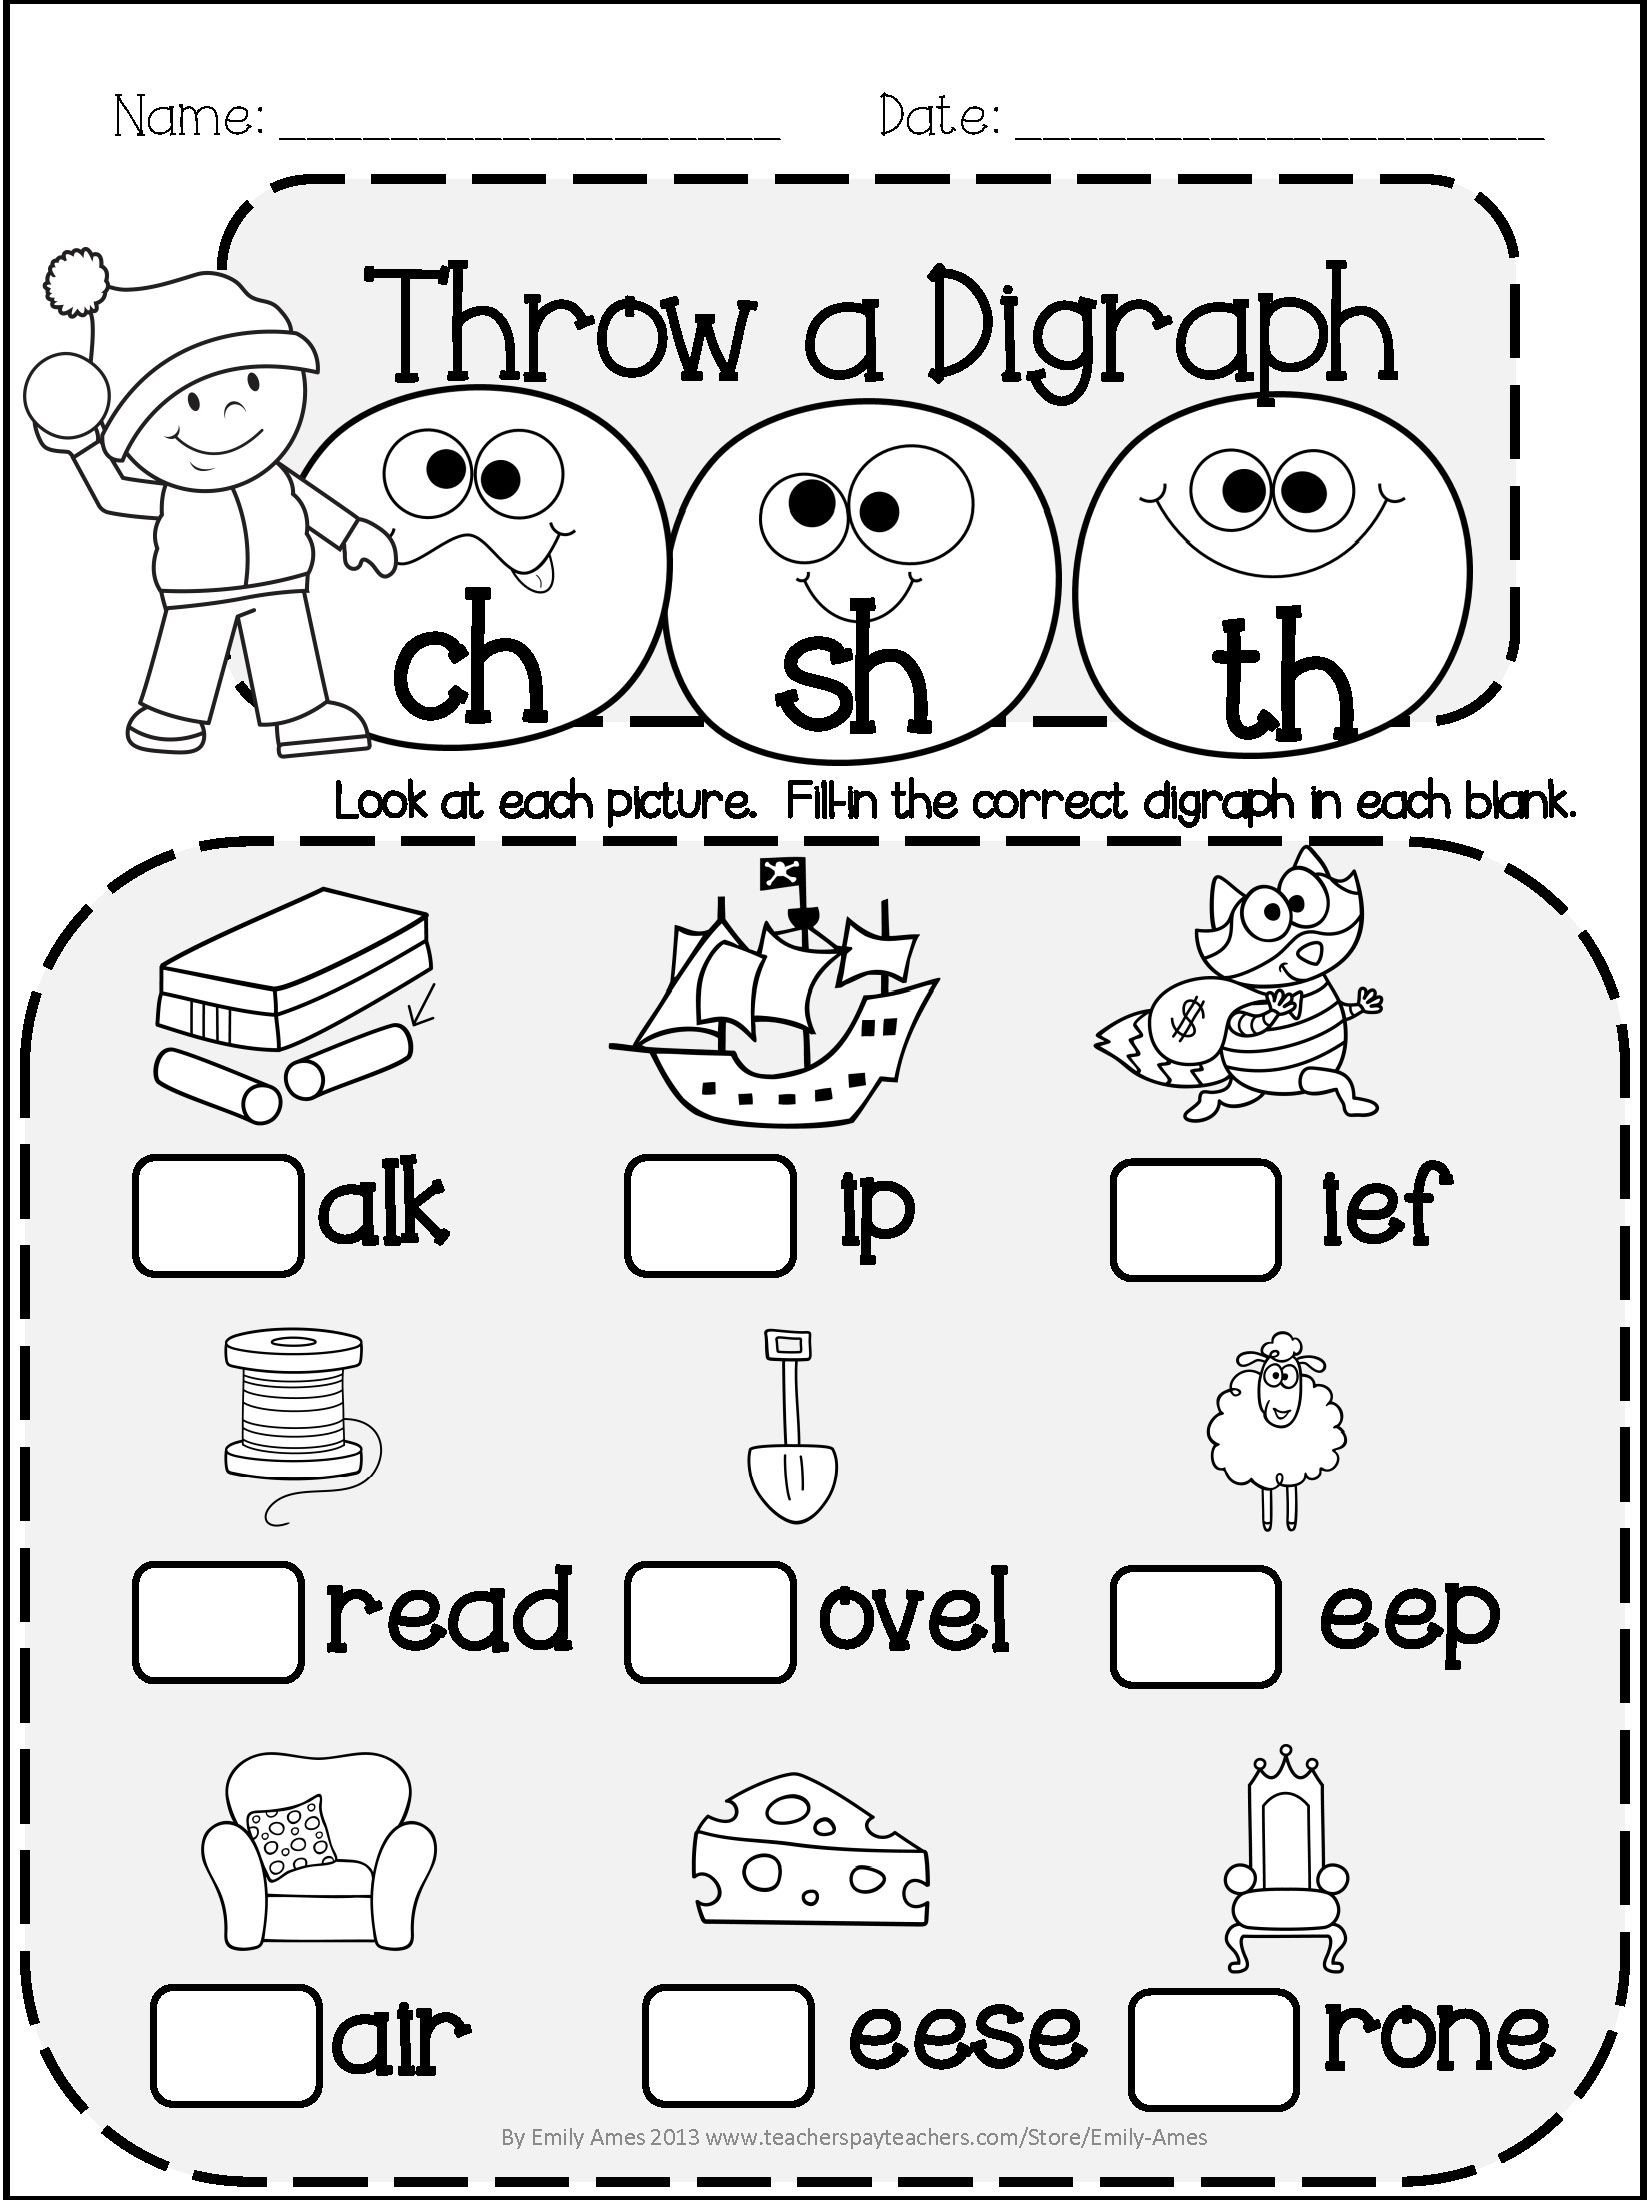 Vowel Consonant E Worksheets Arithmetic Book A Consonant E Worksheets Blending Practice